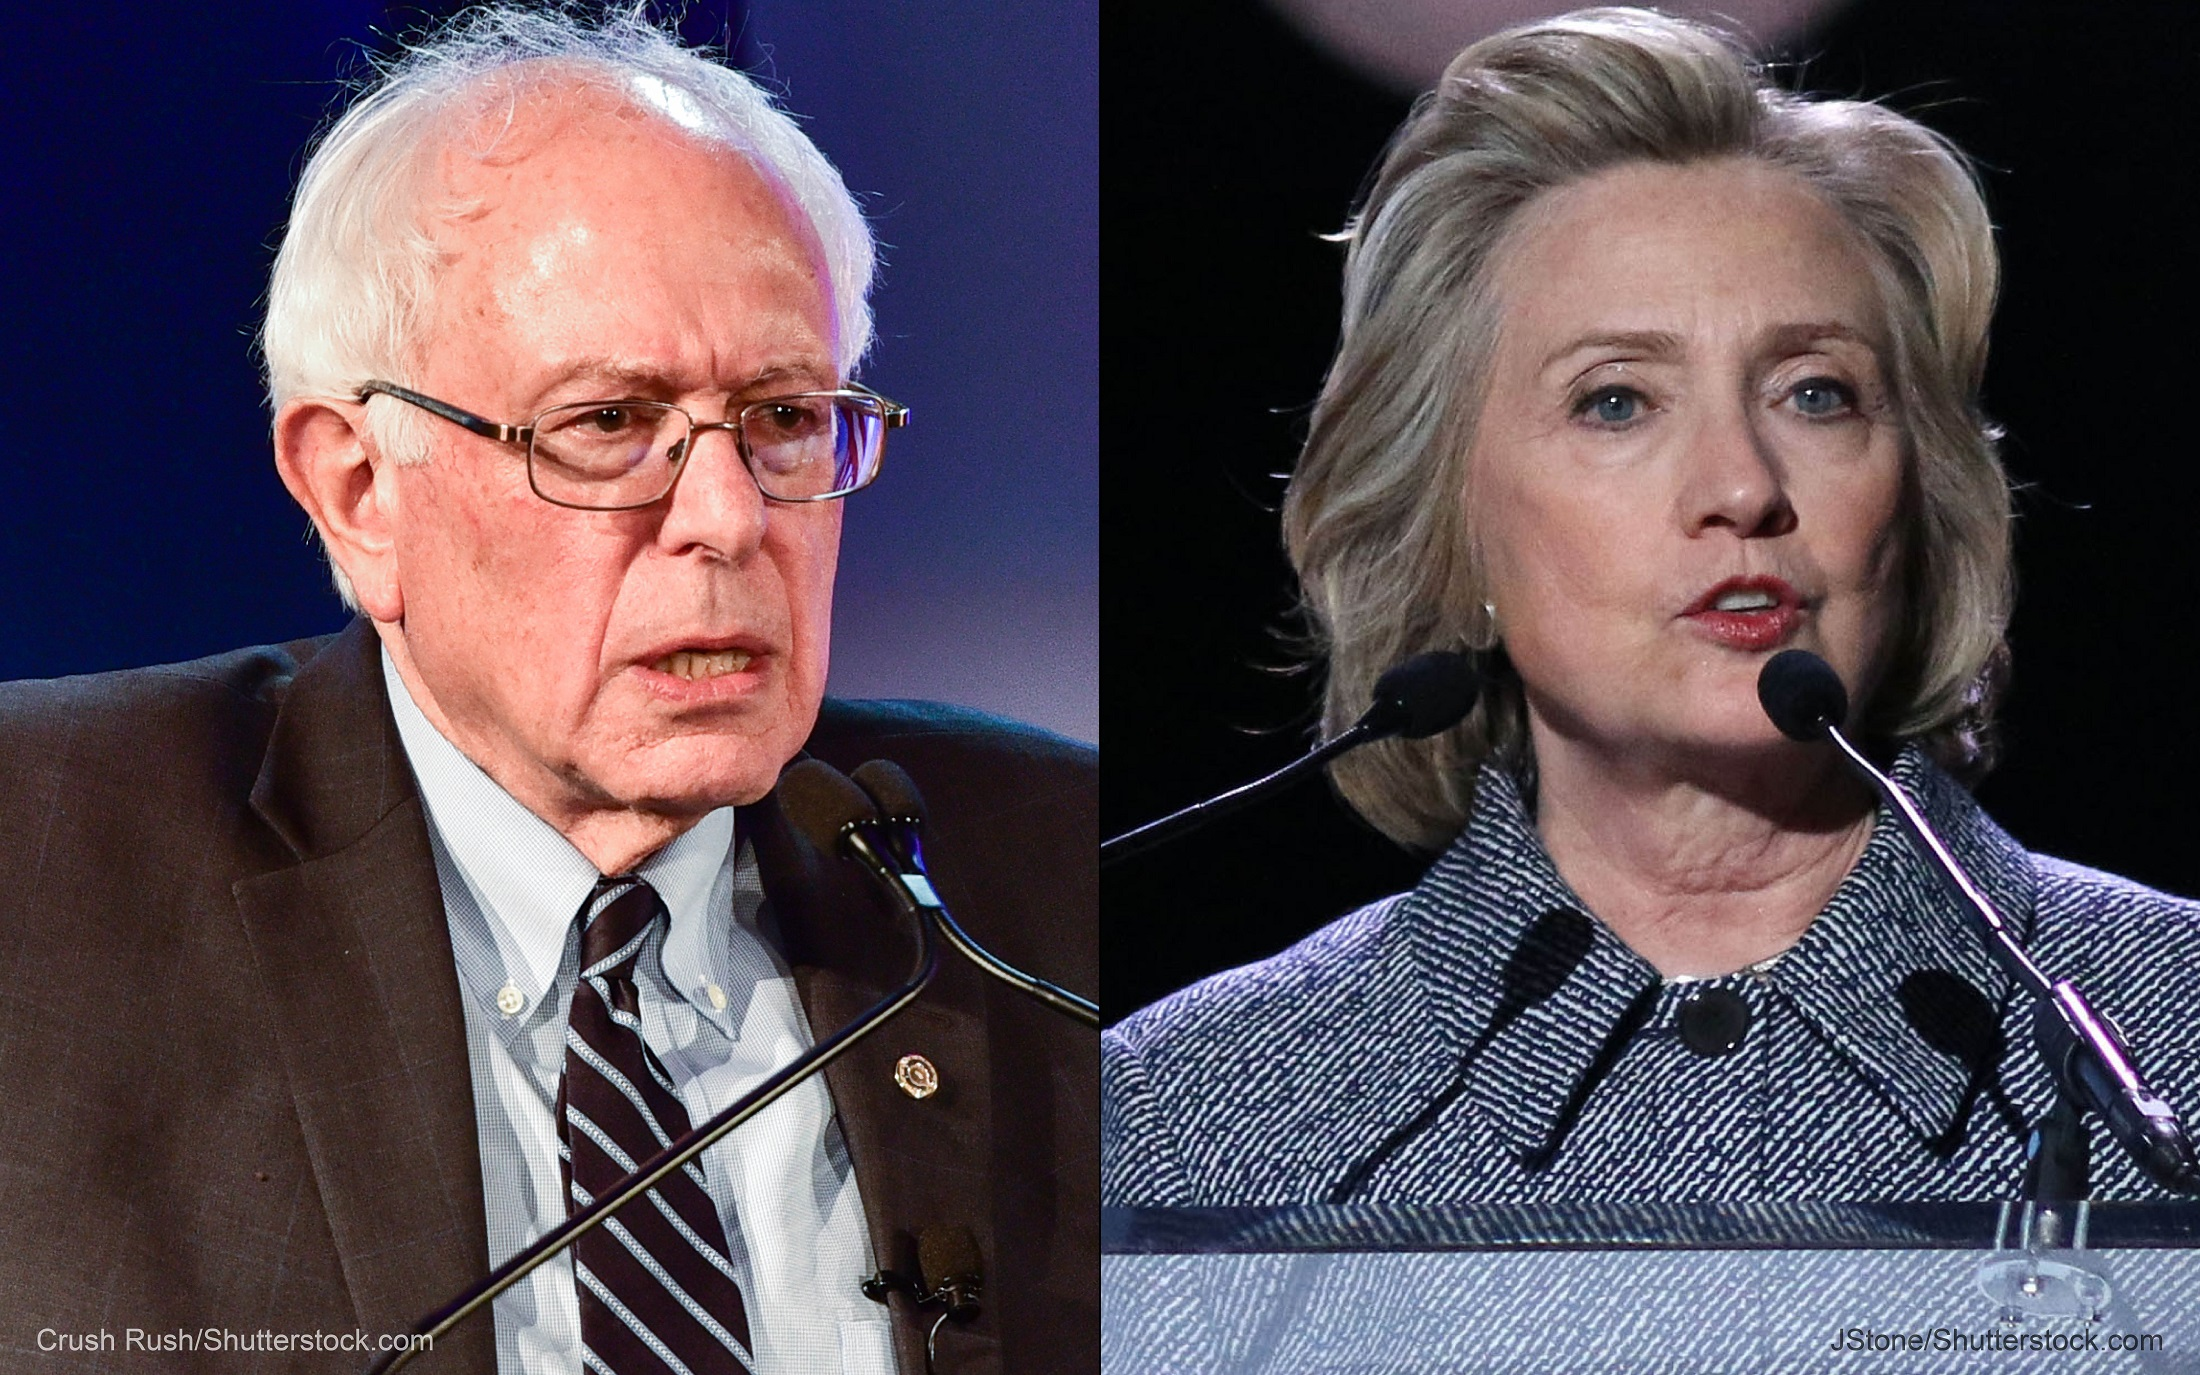 Bernie Sanders Quotes 10 Money Quotes From The Miami Democratic Debate From Hillary